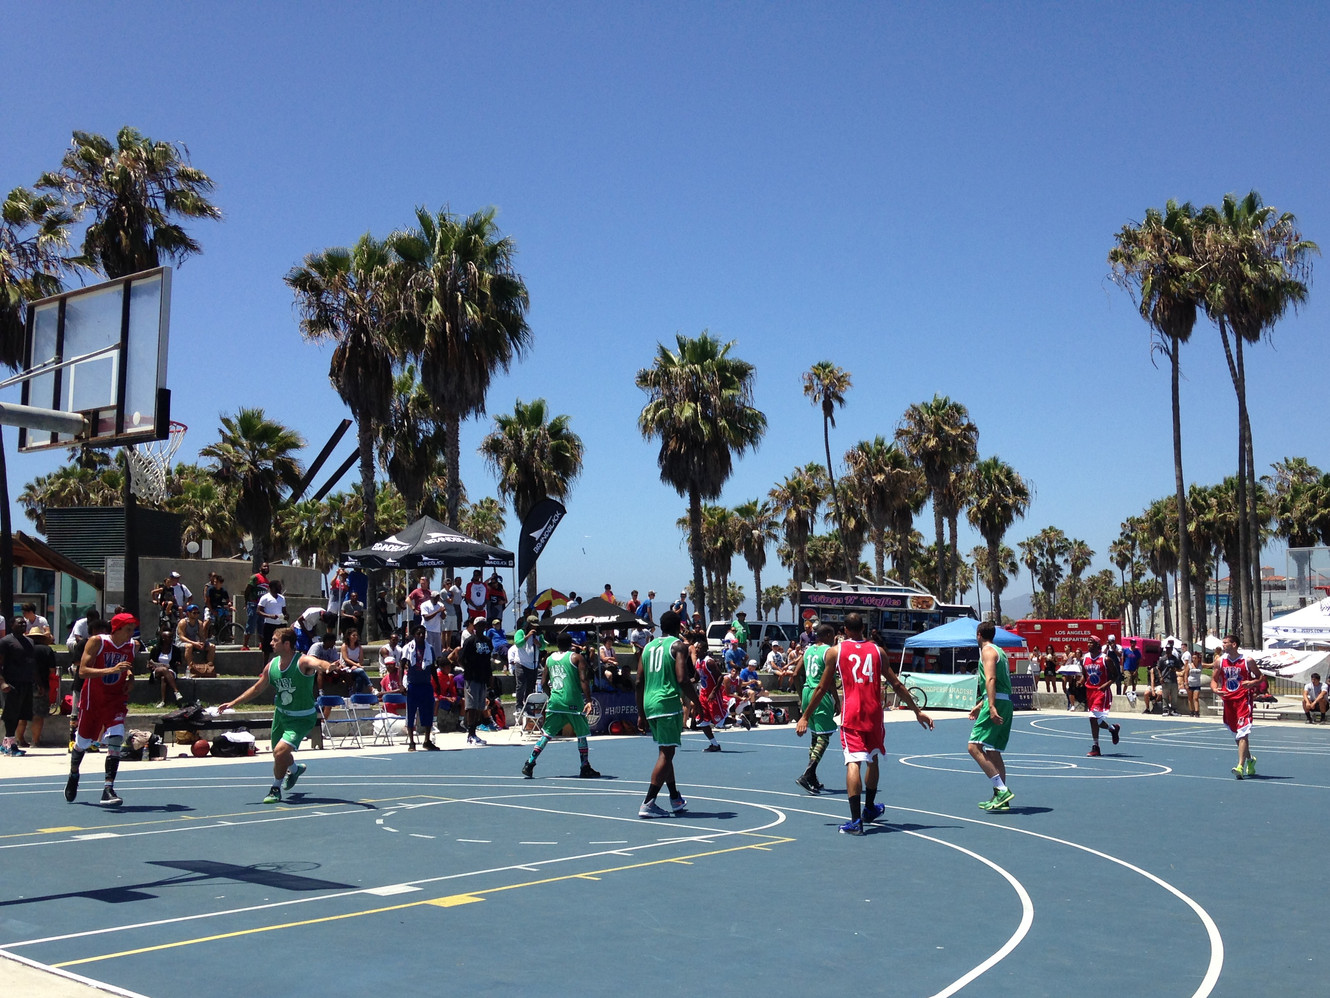 Tournoi de basket à Venice Beach